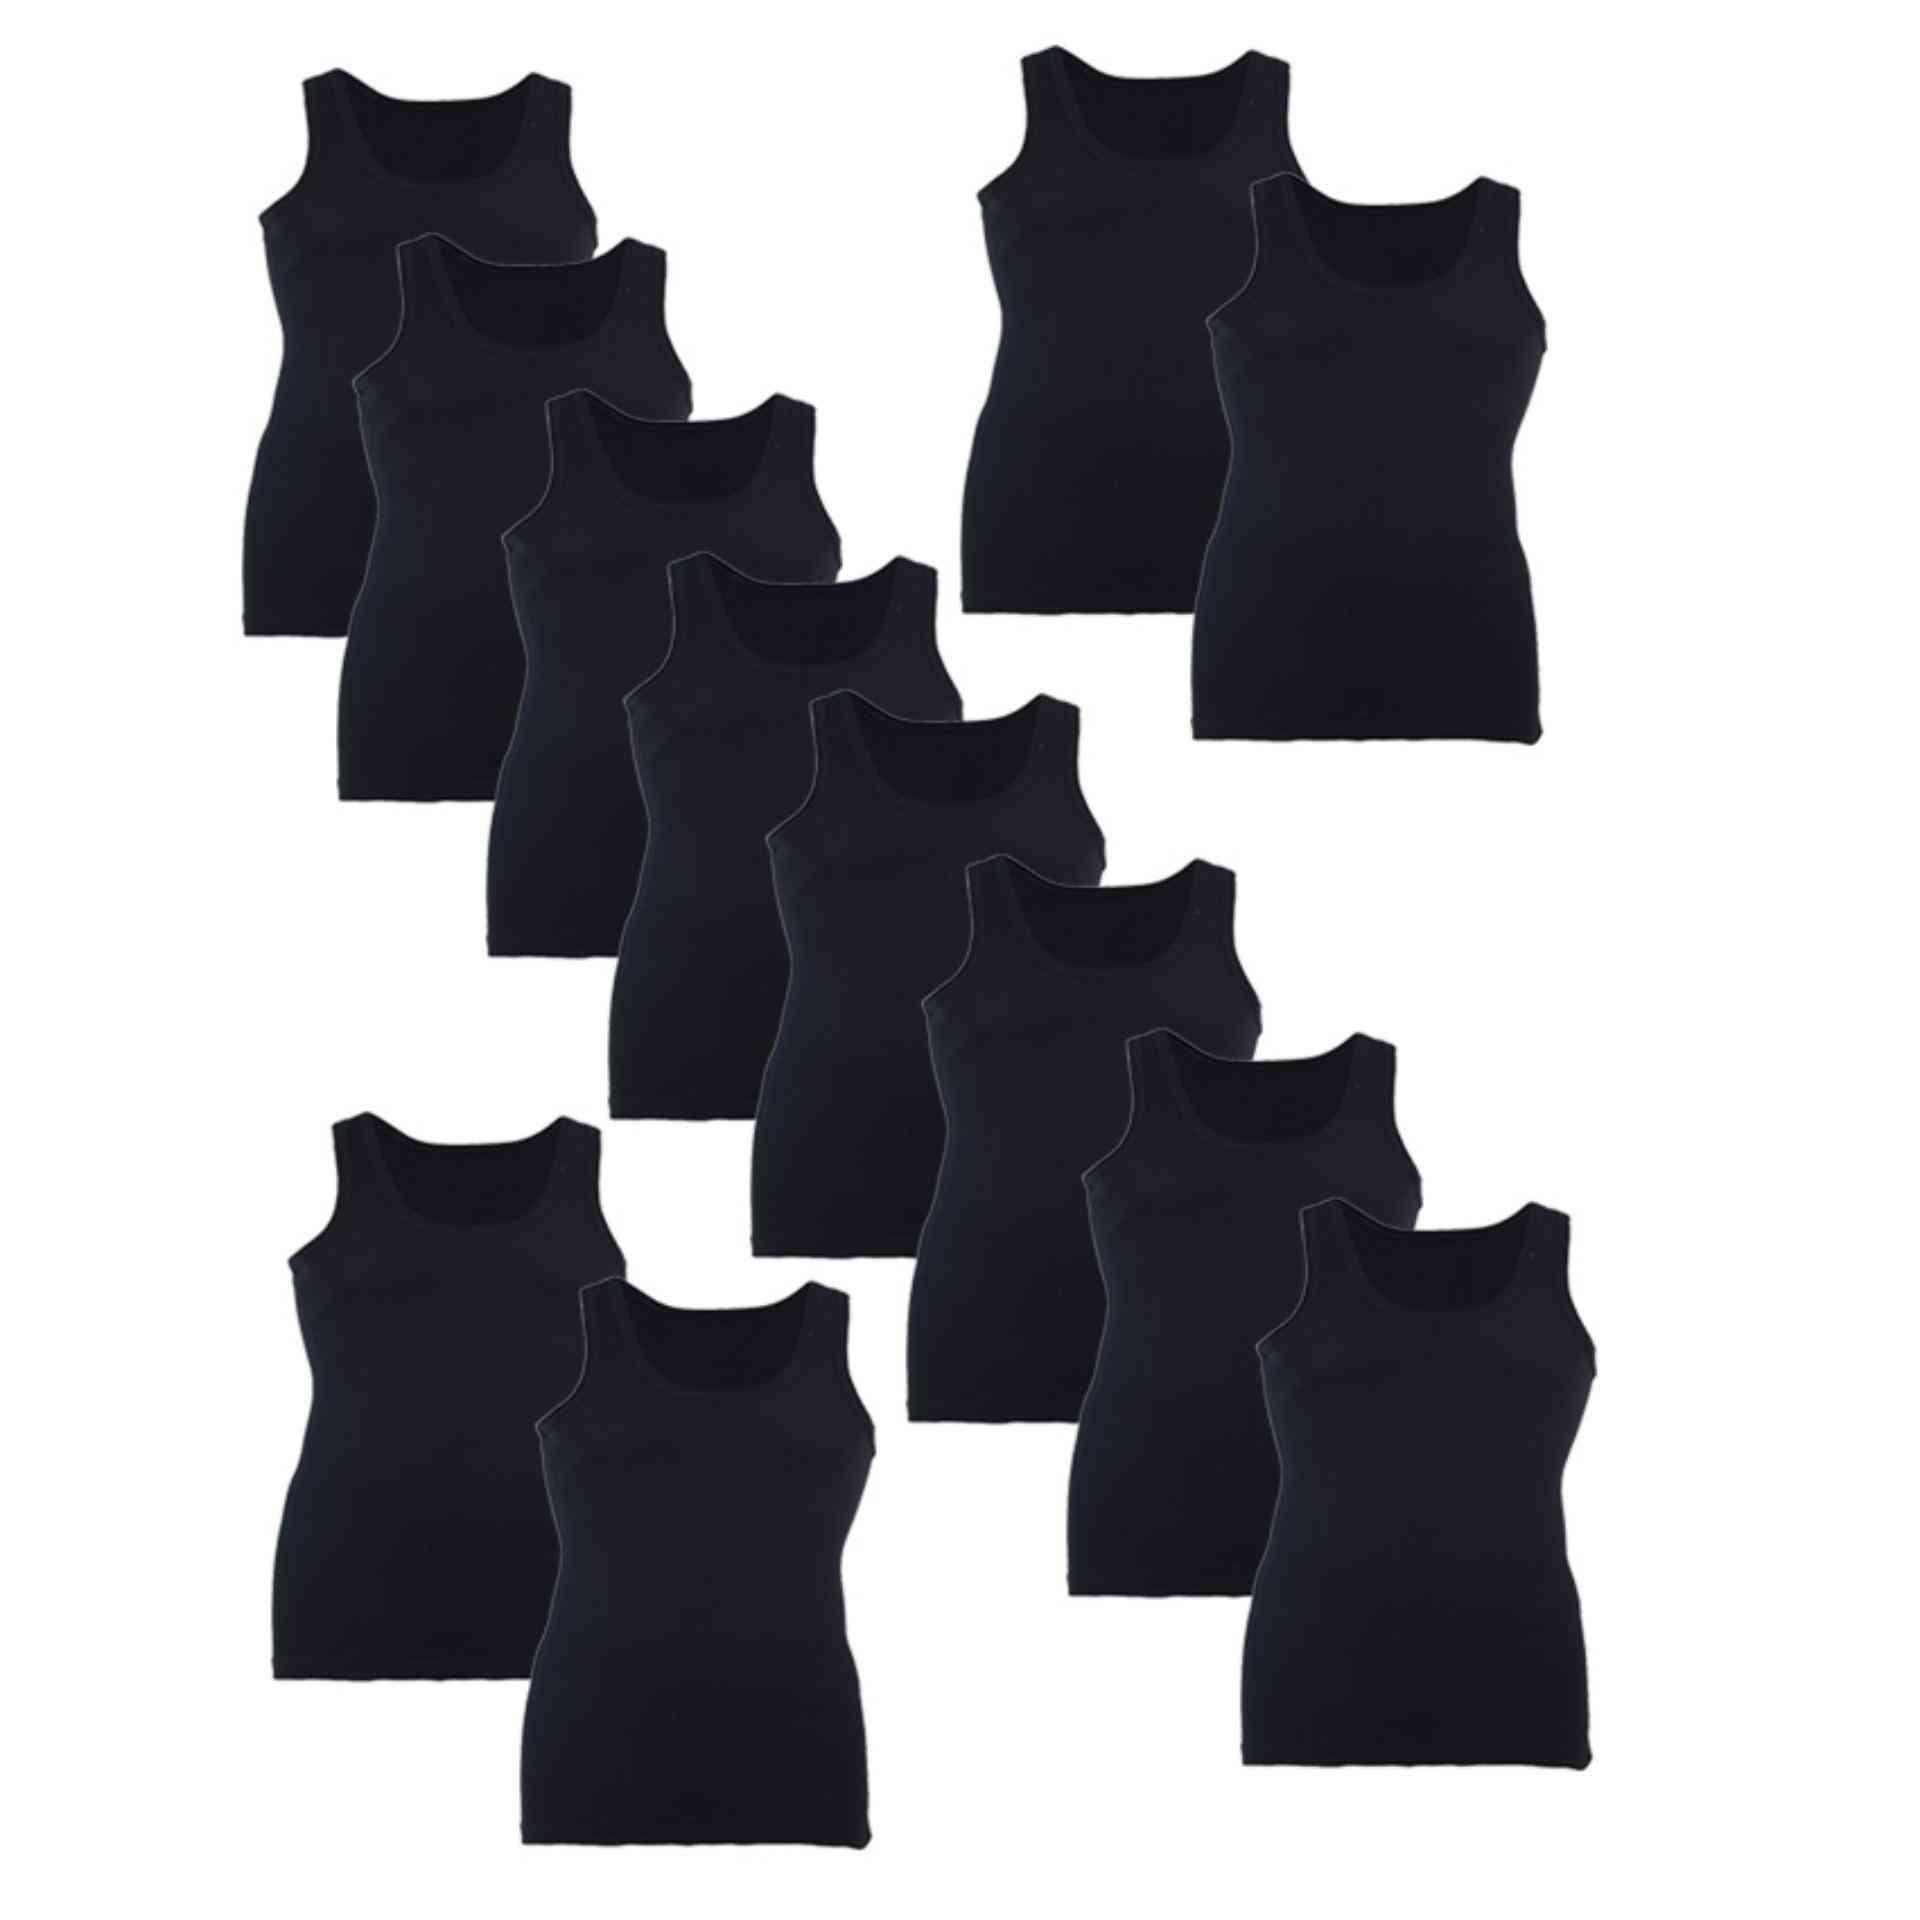 Softy Pack of 12 Pure Cotton Ribbed Vest for Men - Black